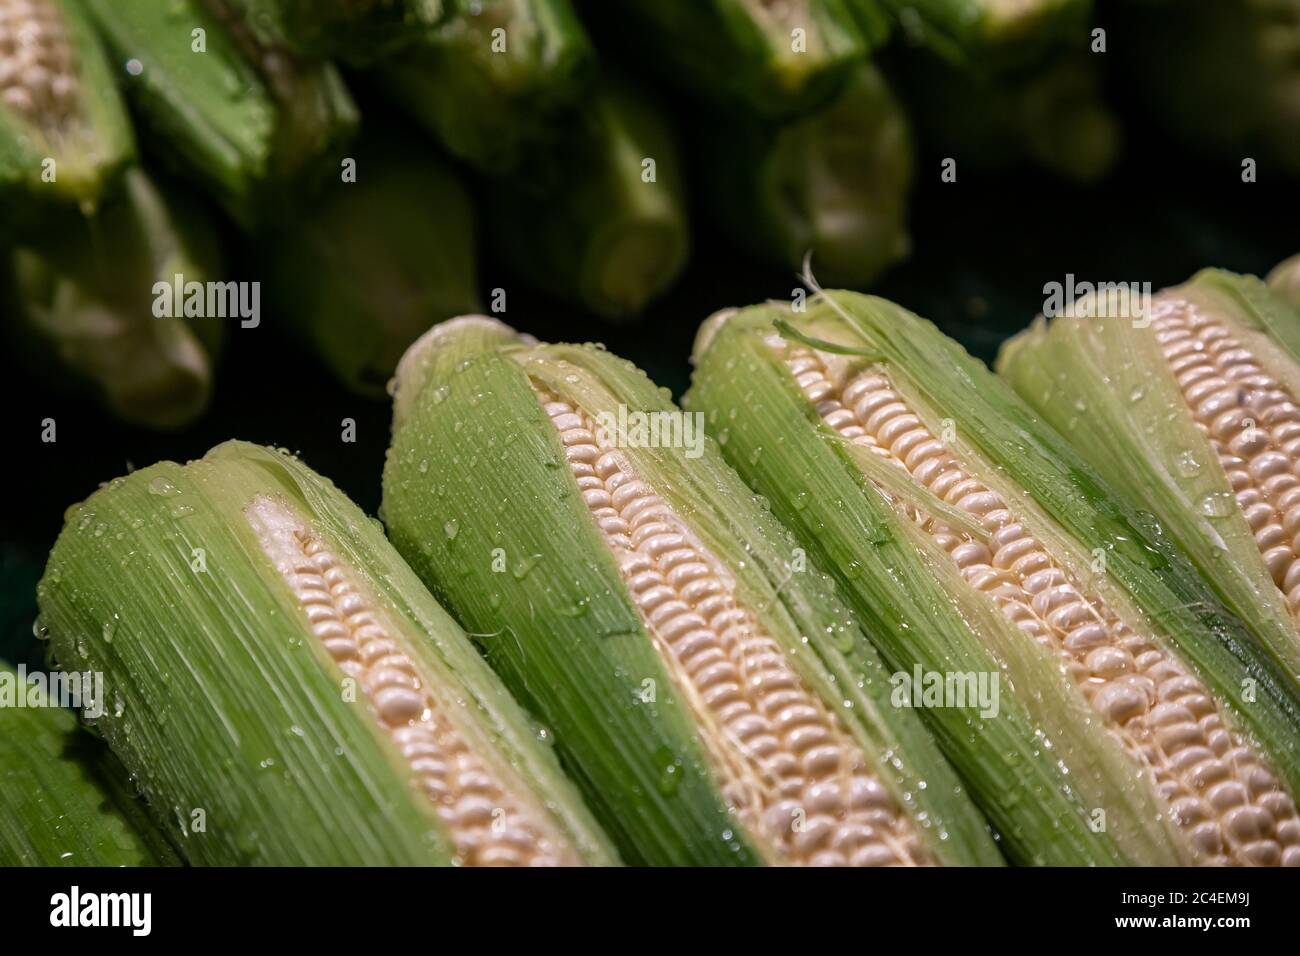 Cobs of freshly washed sweetcorn for sale on a market stall Stock Photo